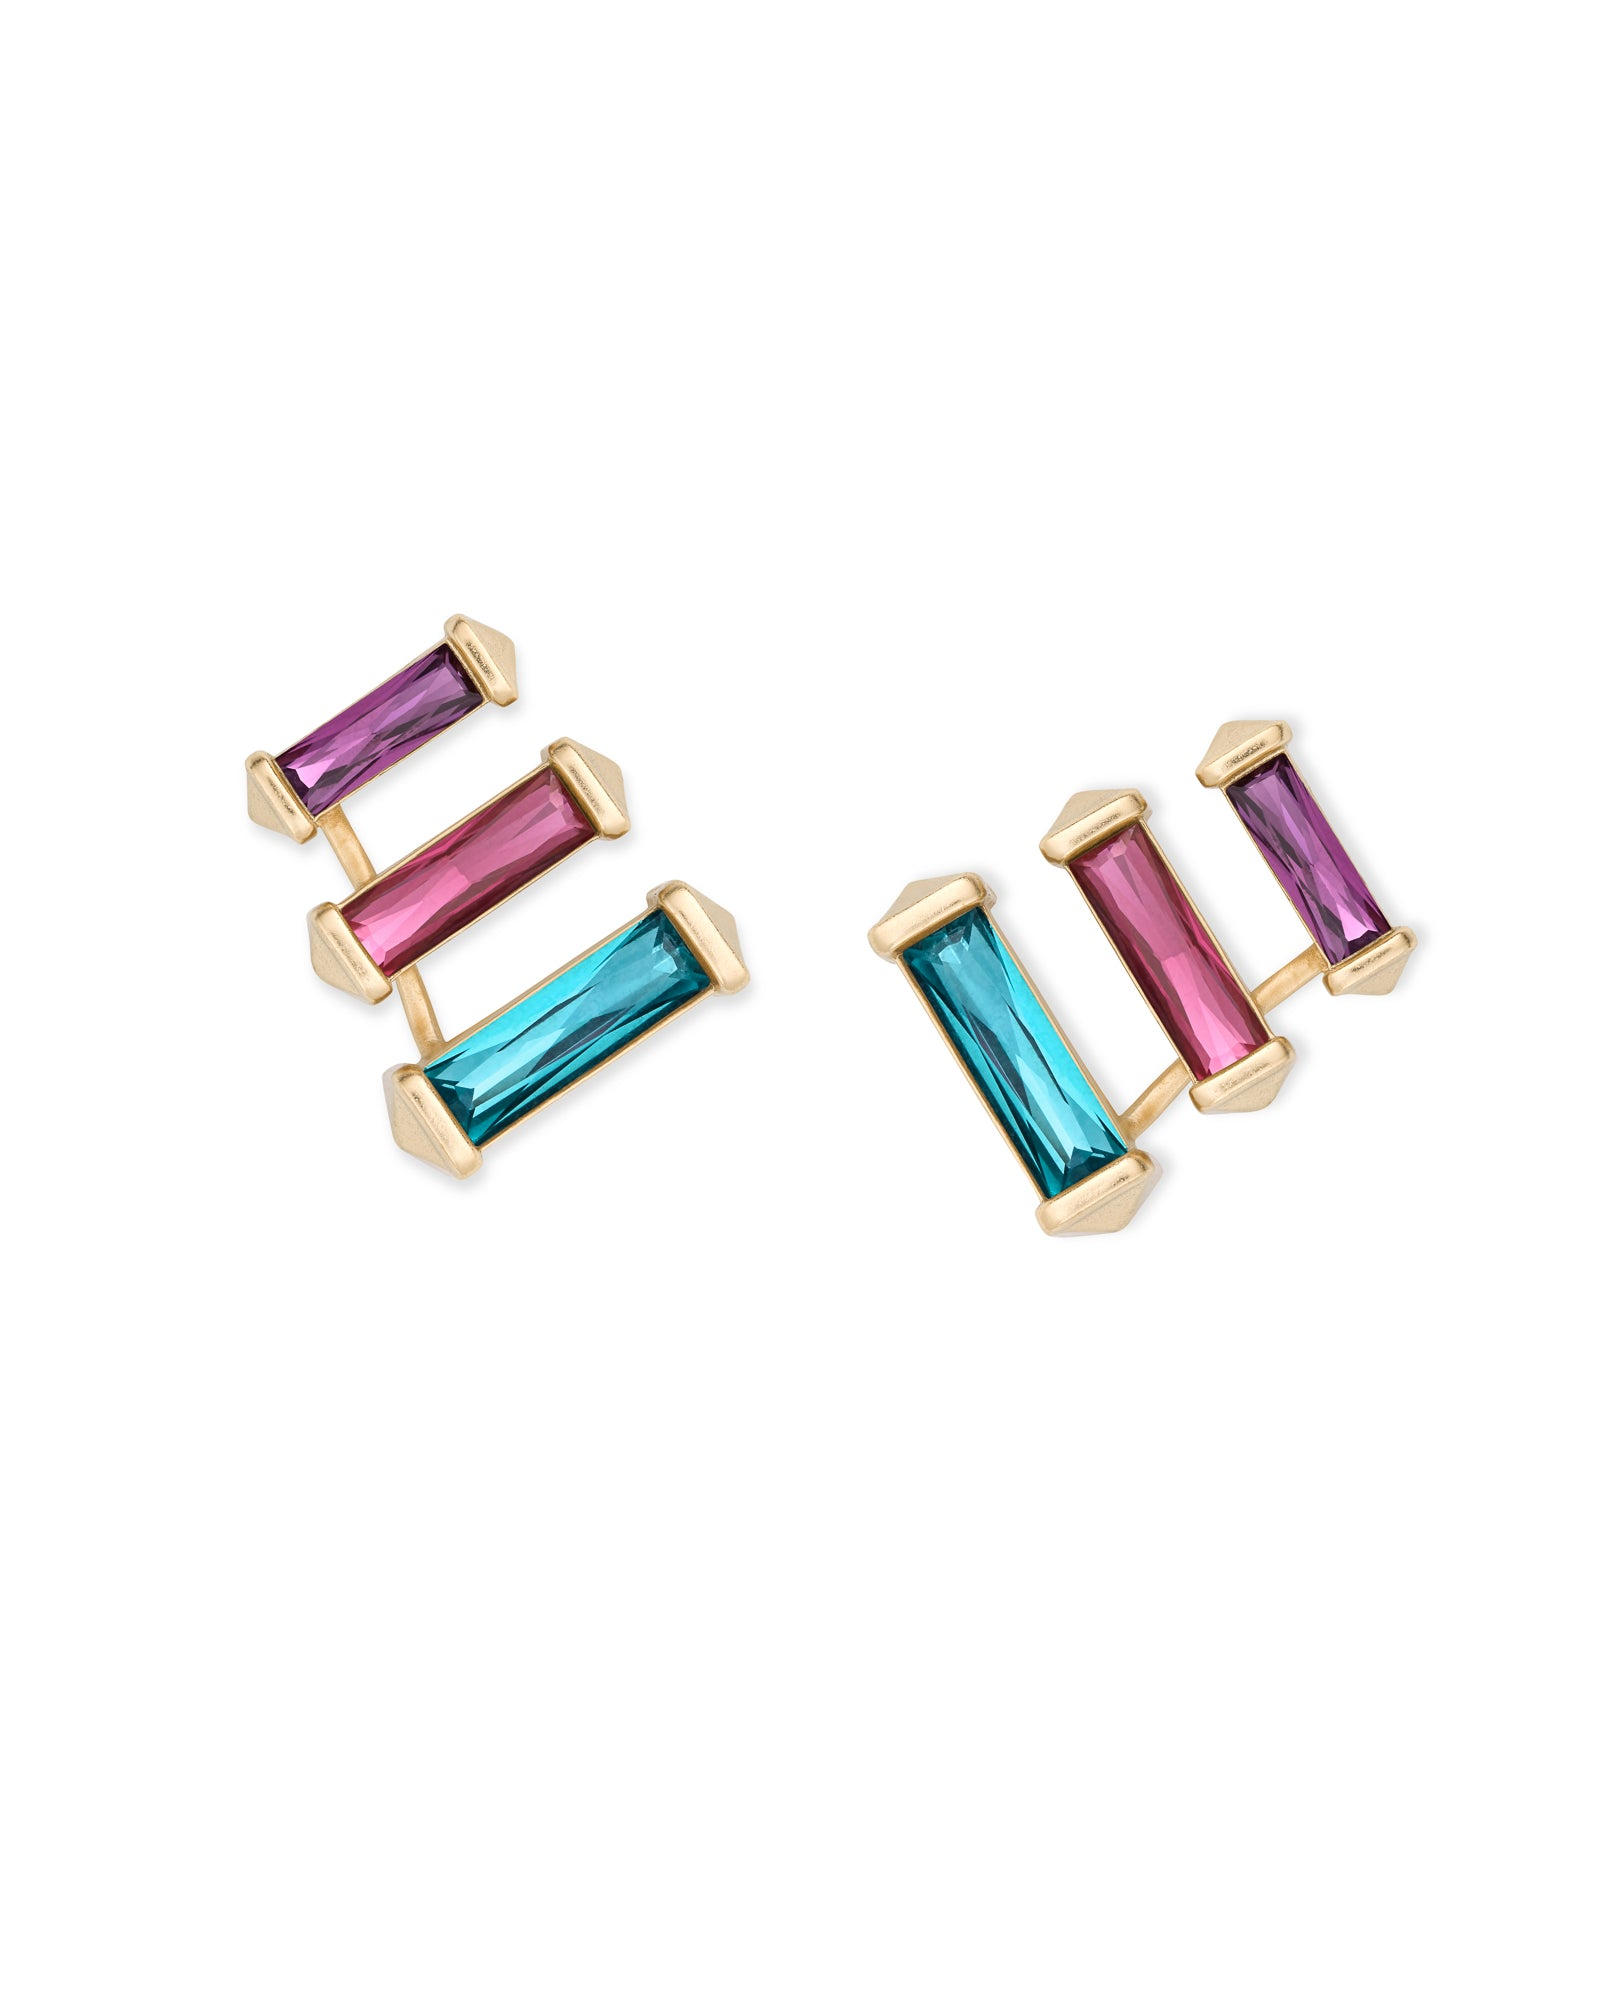 Kendra Scott Brooks Gold Ear Climbers In Jewel Tone Mix